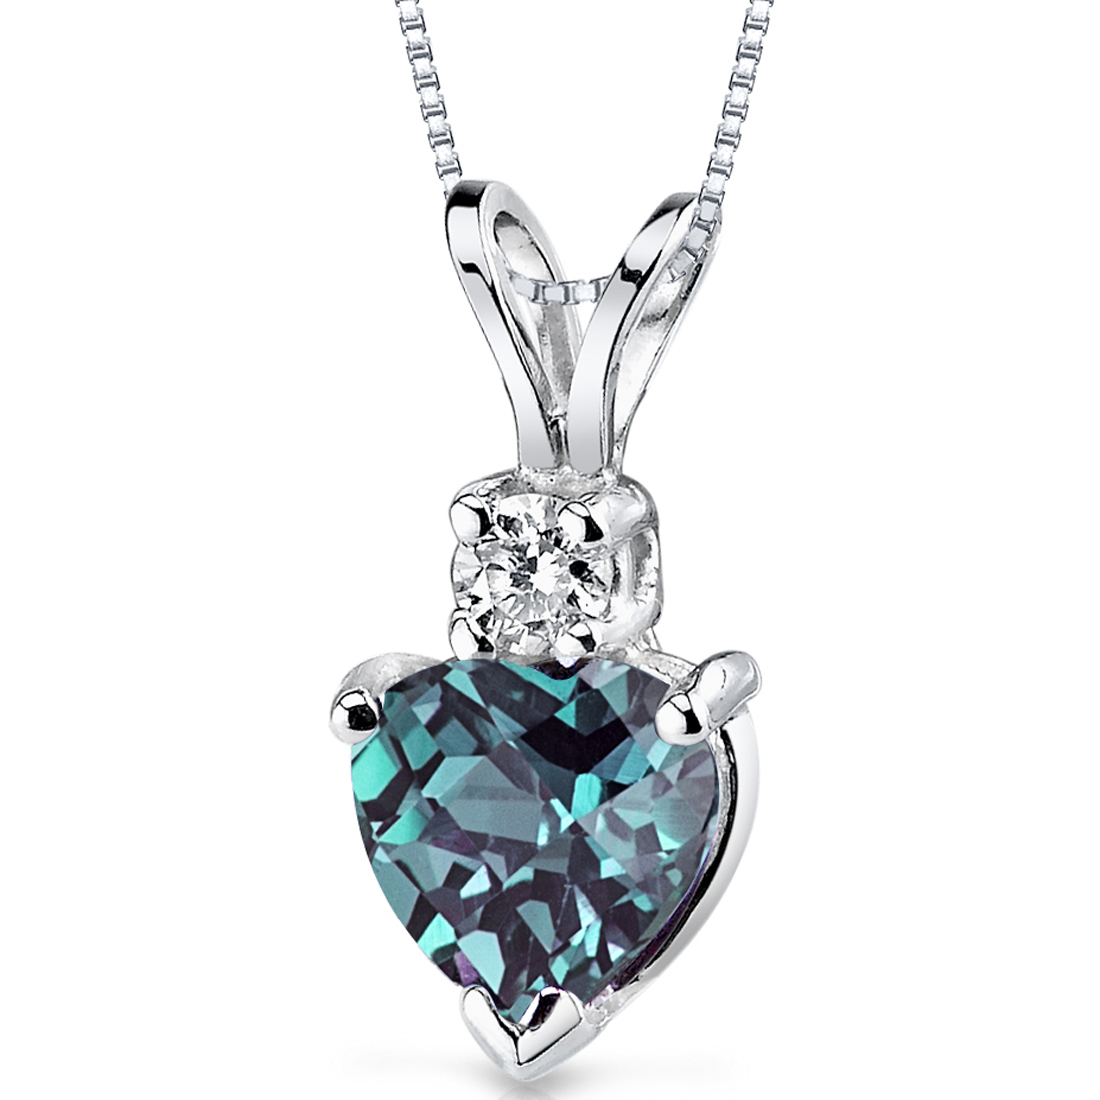 Peora 1.00 Ct Heart Shape Created Alexandrite 14K White Gold Pendant with Diamond Accent, 18""